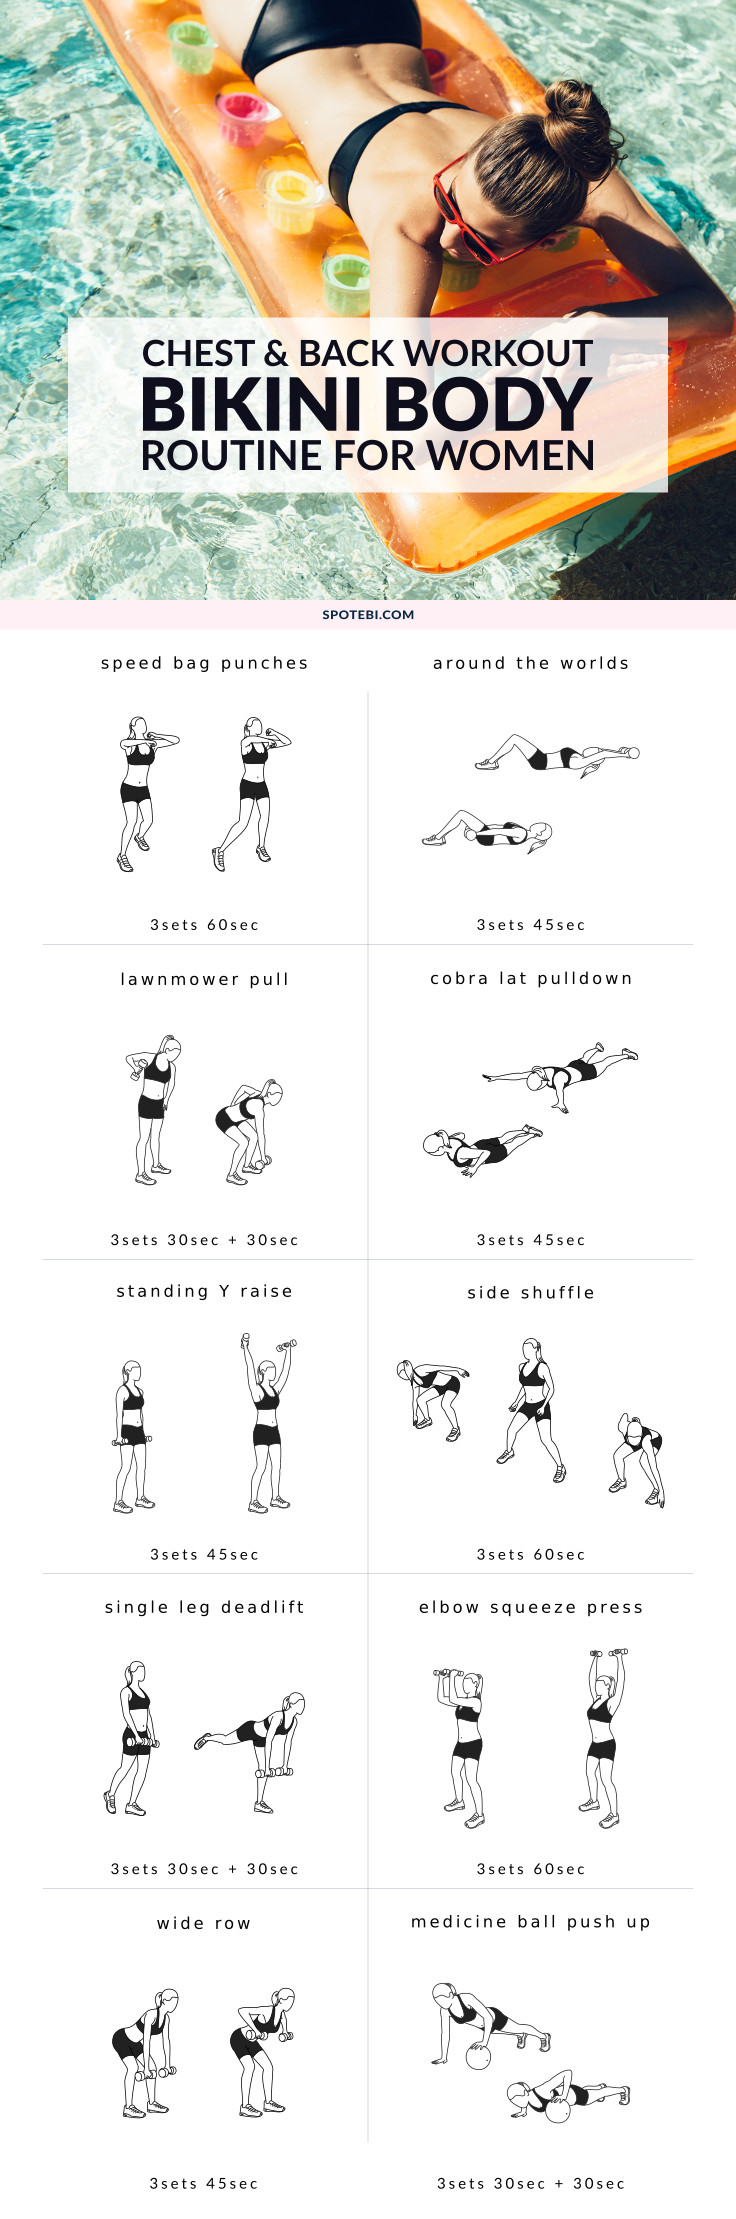 Try this chest and back workout and get your body ready for tank top season! This set of 10 upper body exercises is perfect for toning and shaping the muscles and giving your bust line a lift! https://www.spotebi.com/workout-routines/chest-and-back-workout-bikini-body/